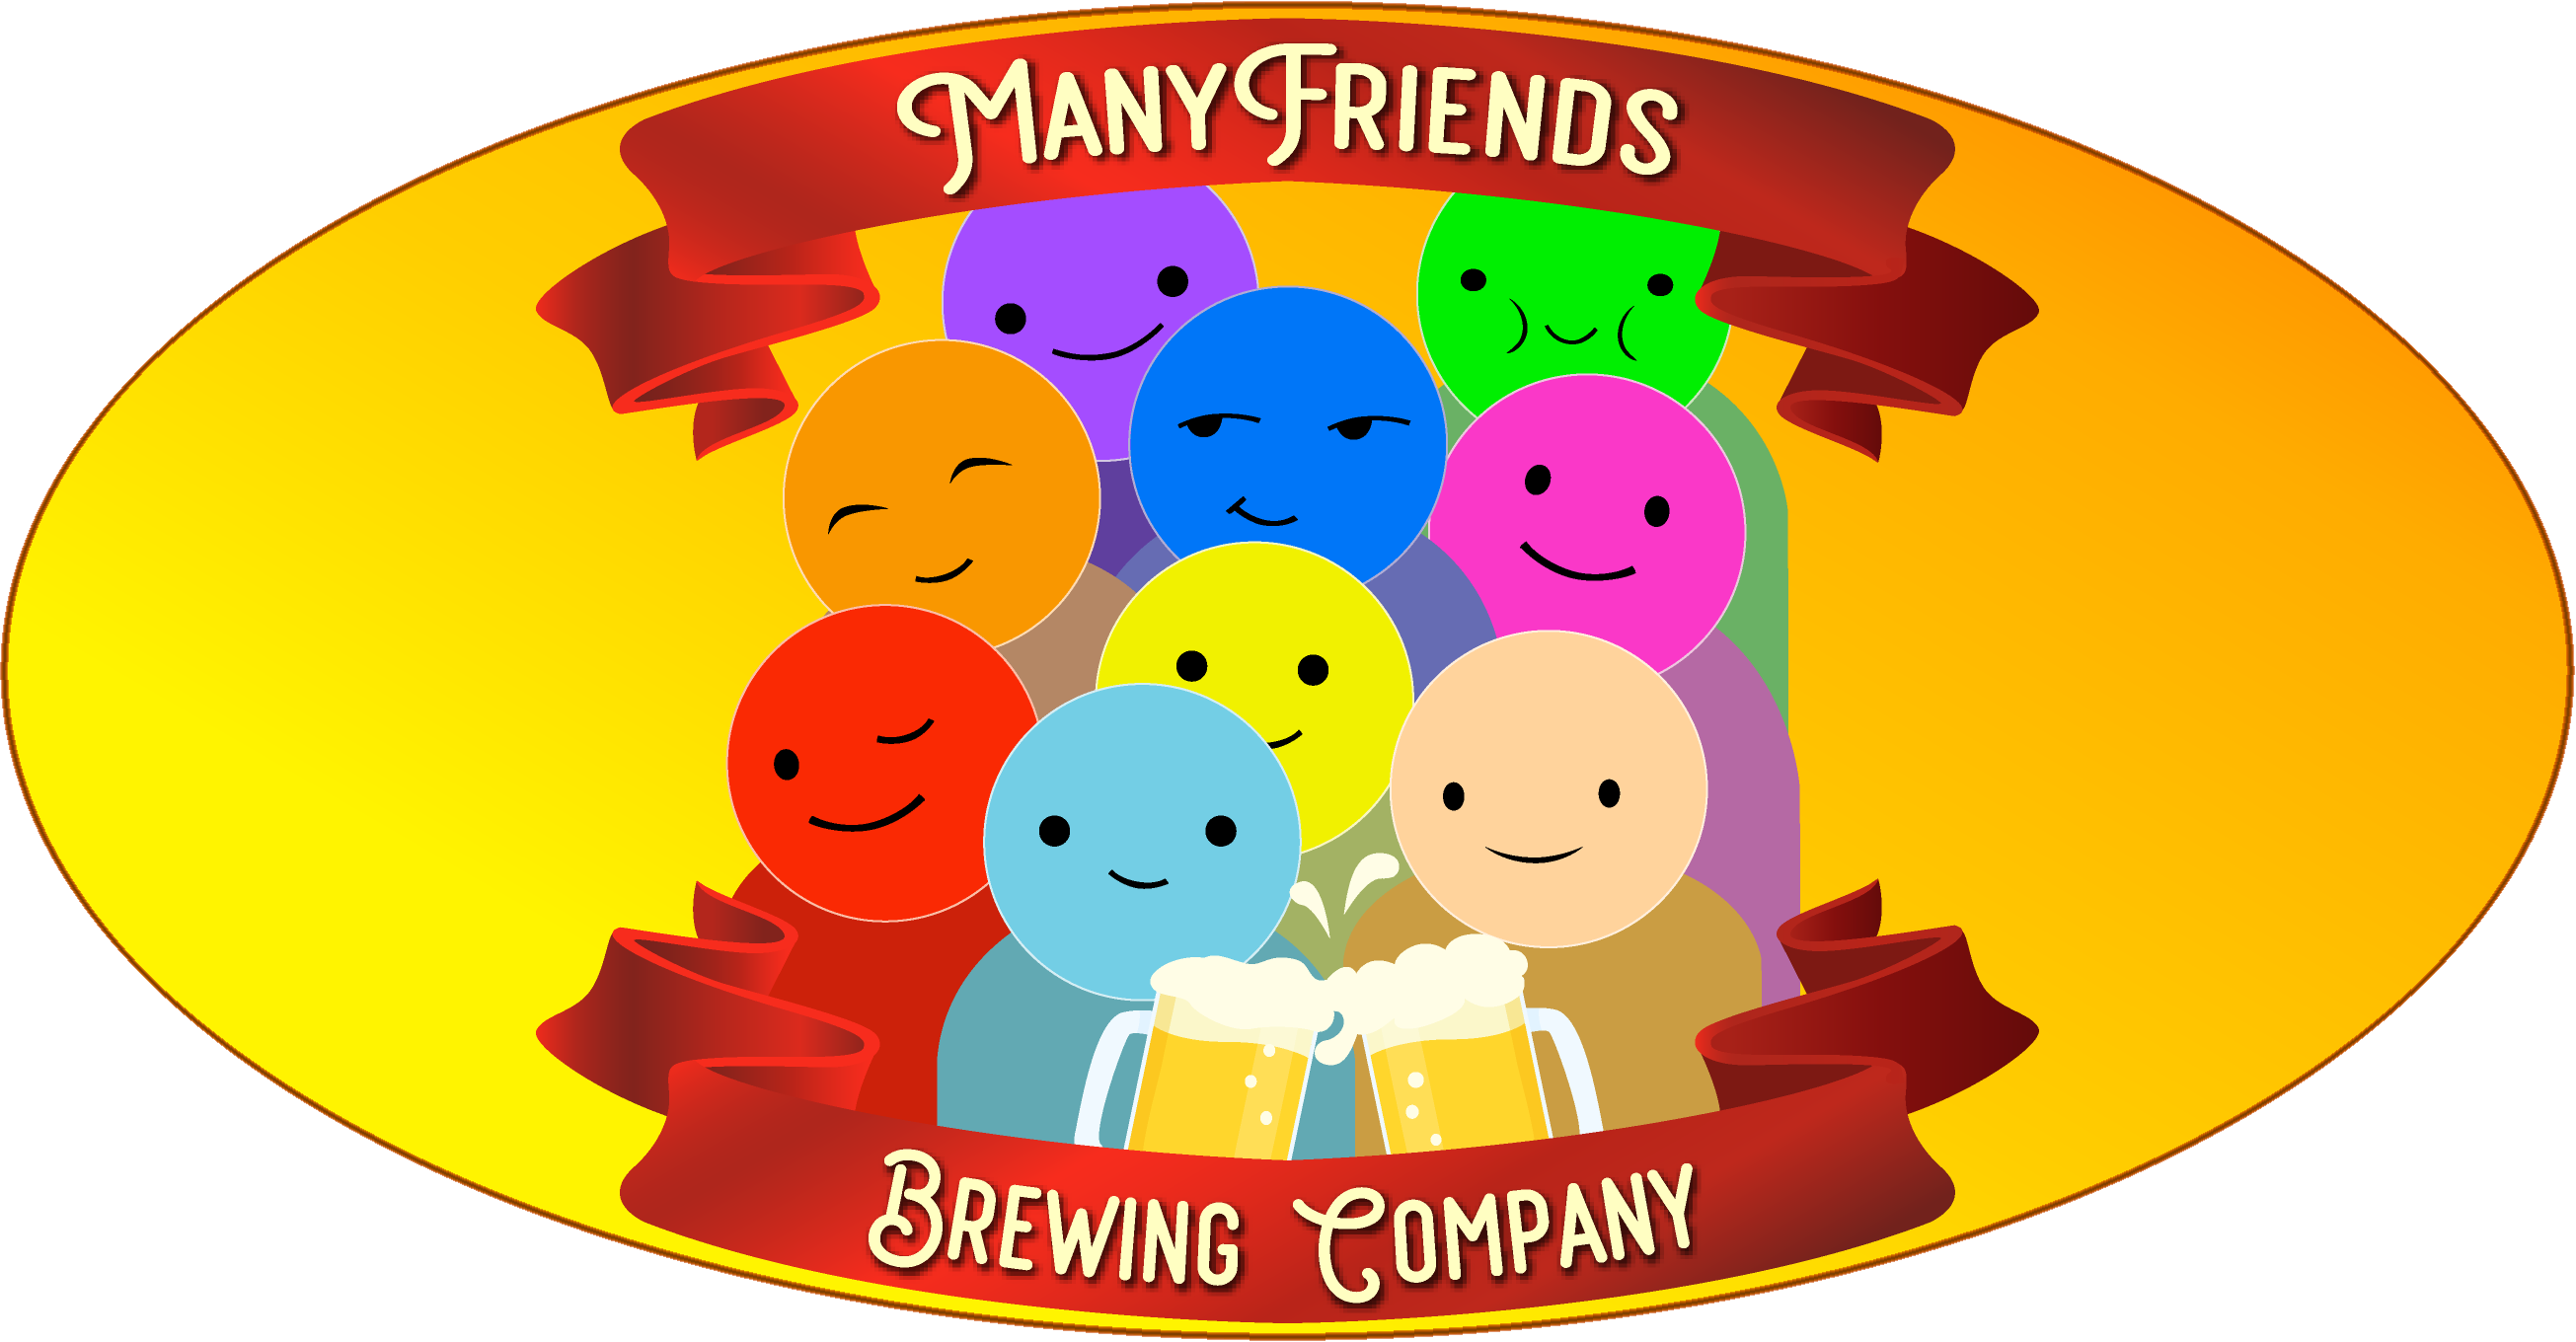 ManyFriends Brewing Company